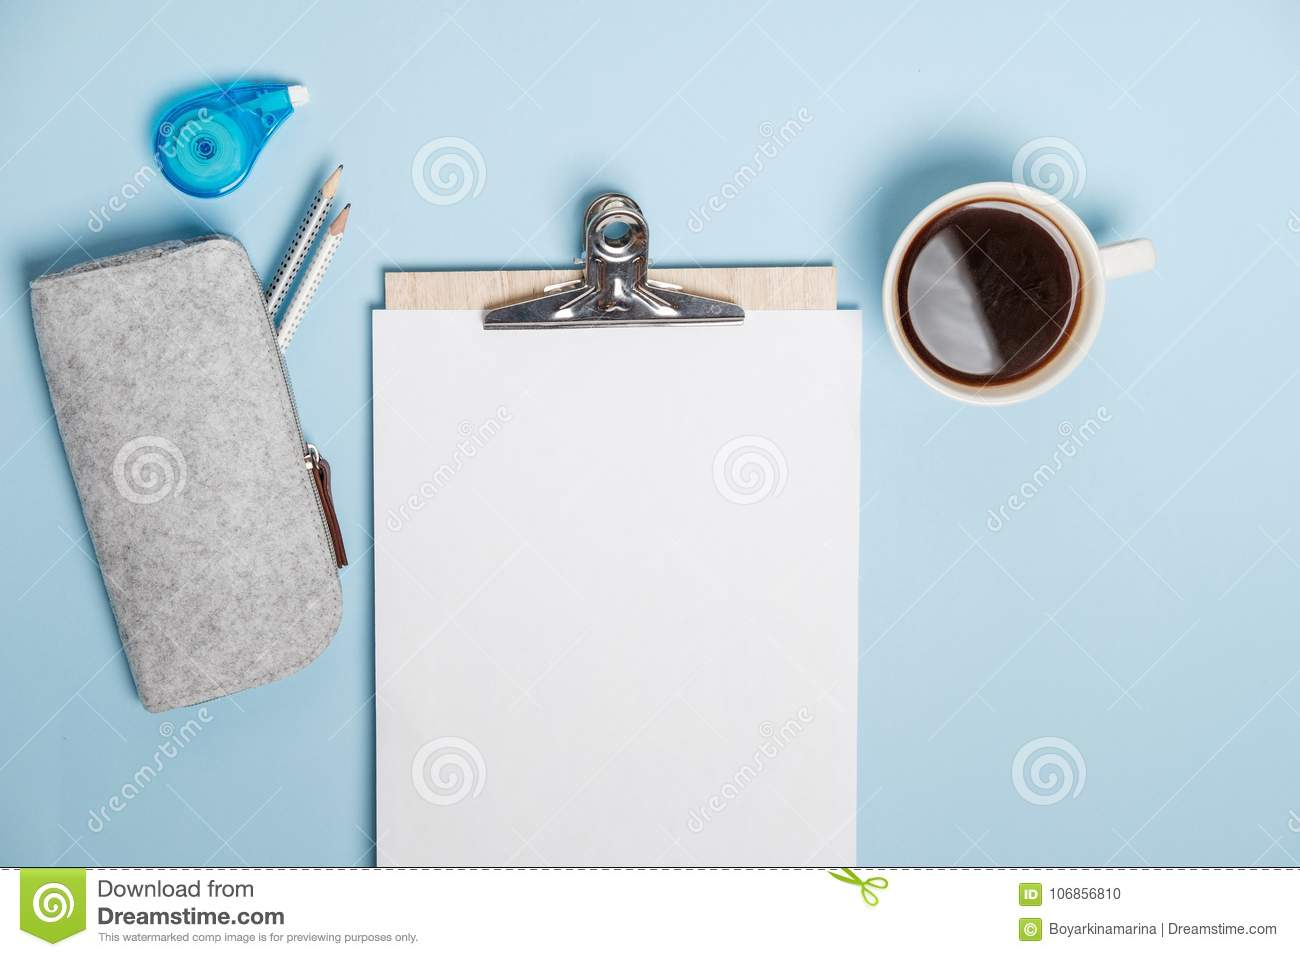 Creative Desktop With Laptop, Coffee And Stationery On Blue